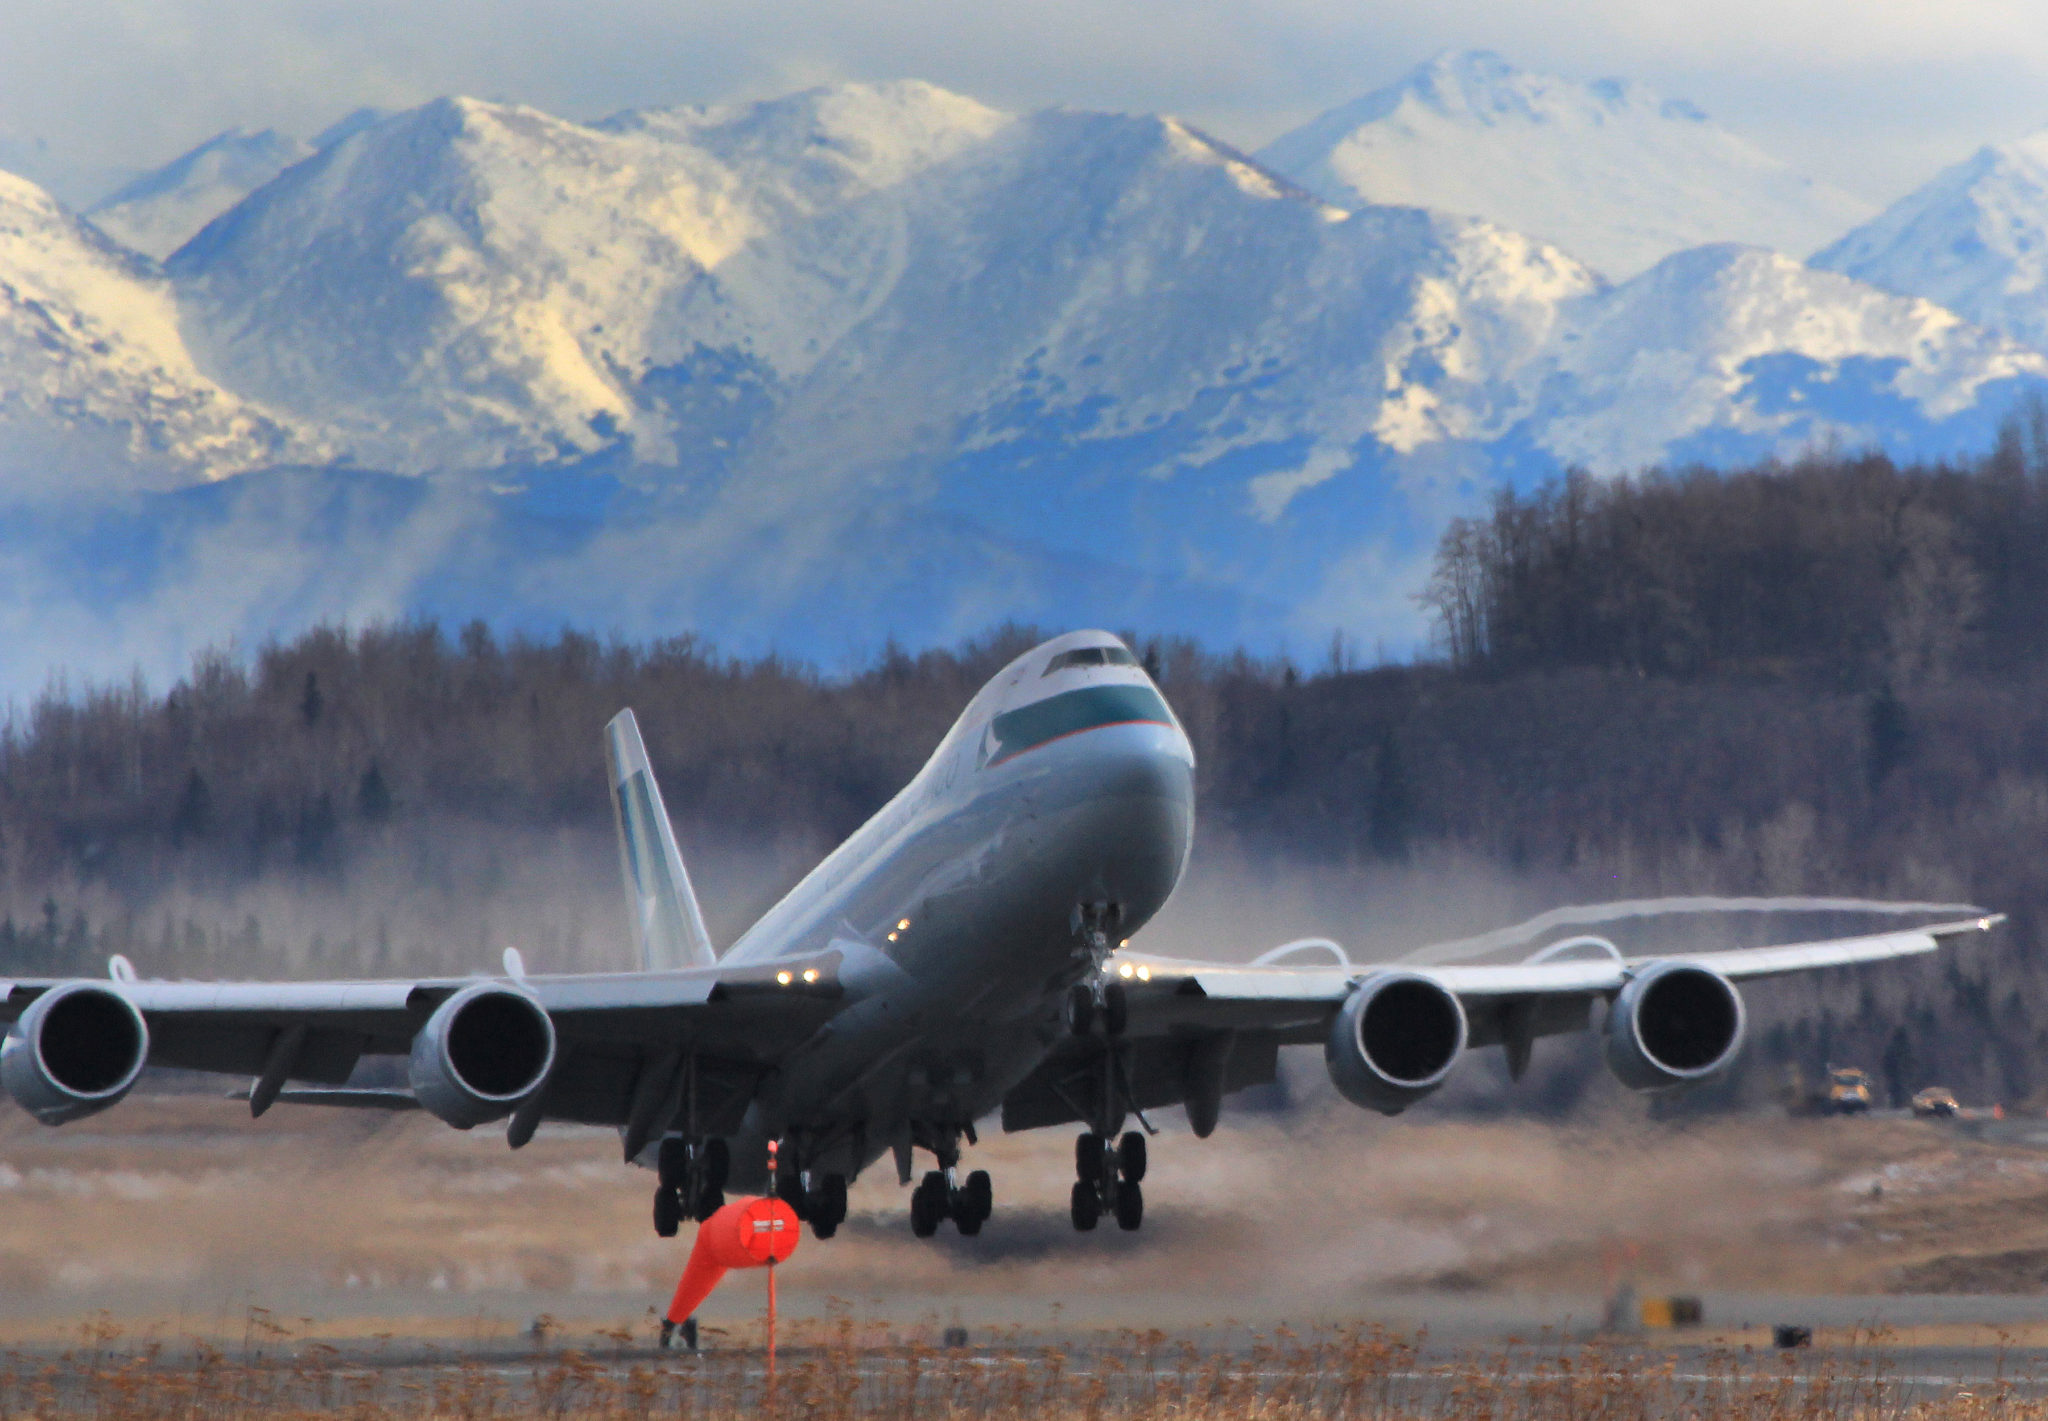 Alaska Air Cargo & Aircraft portraits- Alaskafoto | Alaska photography, Airplane photographer